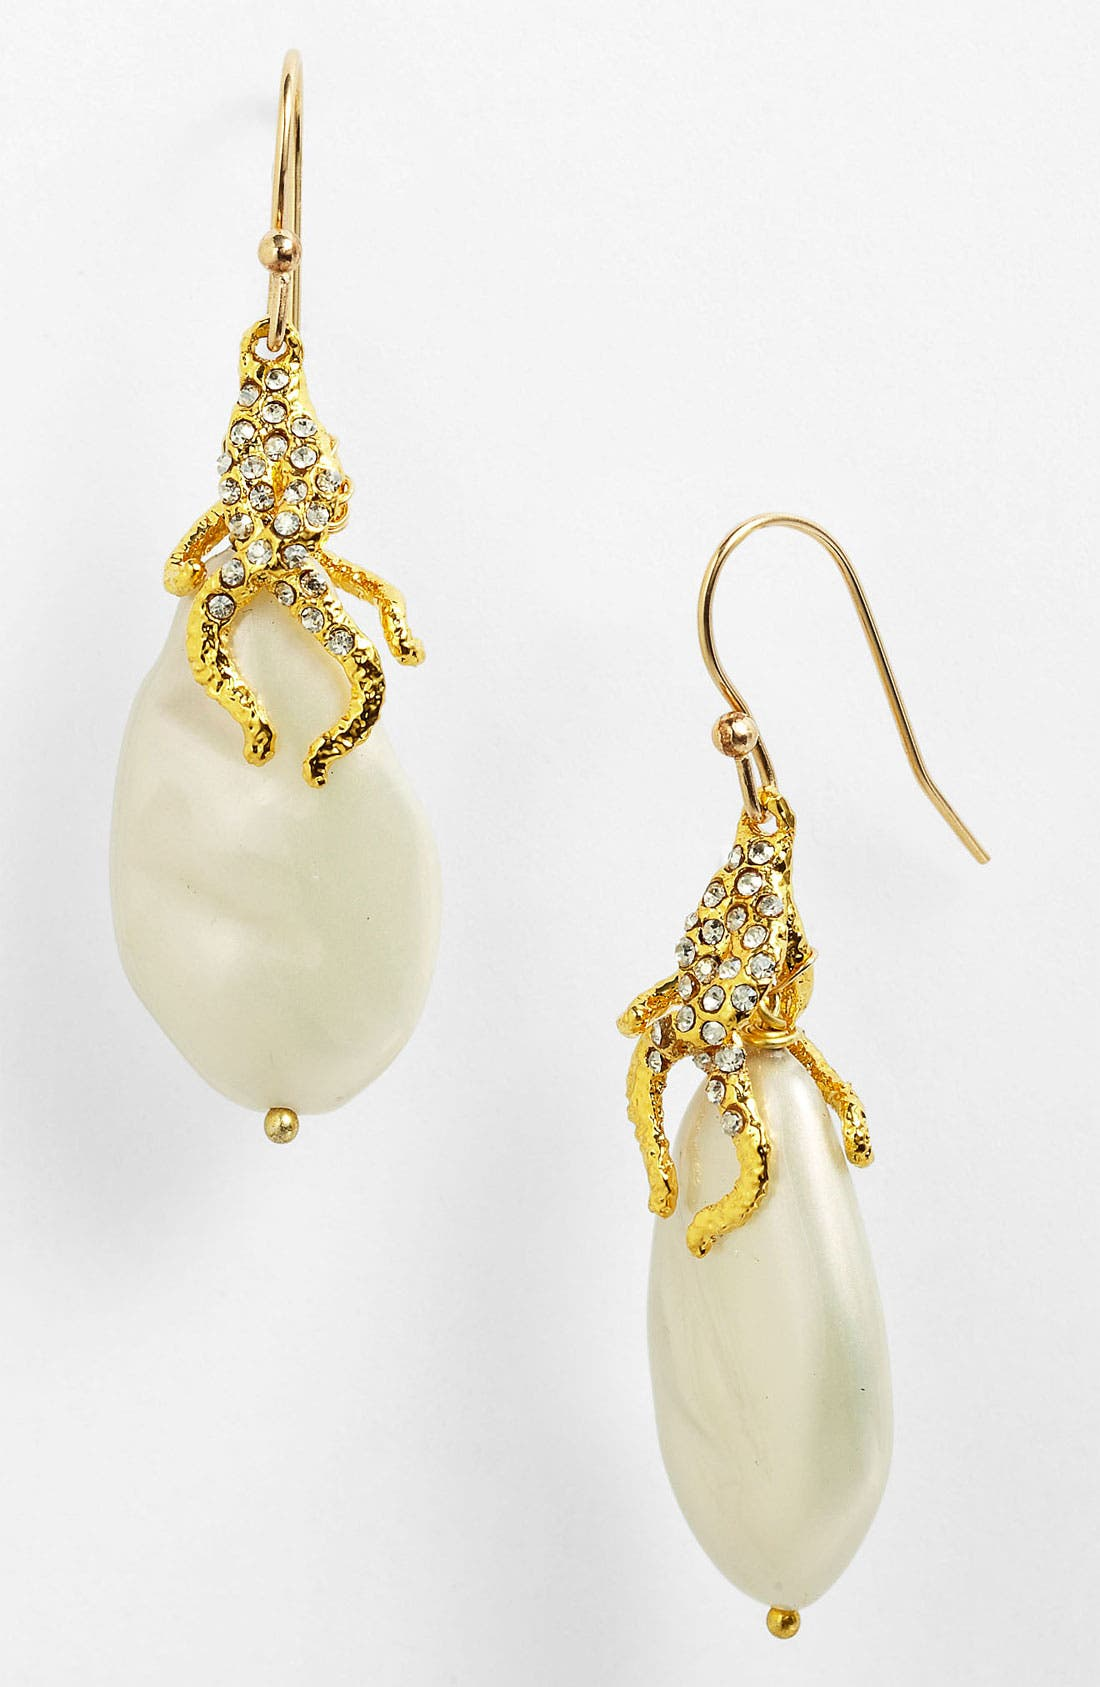 Alternate Image 1 Selected - Alexis Bittar 'Elements' Vine Capped Pearl Earrings (Nordstrom Exclusive)